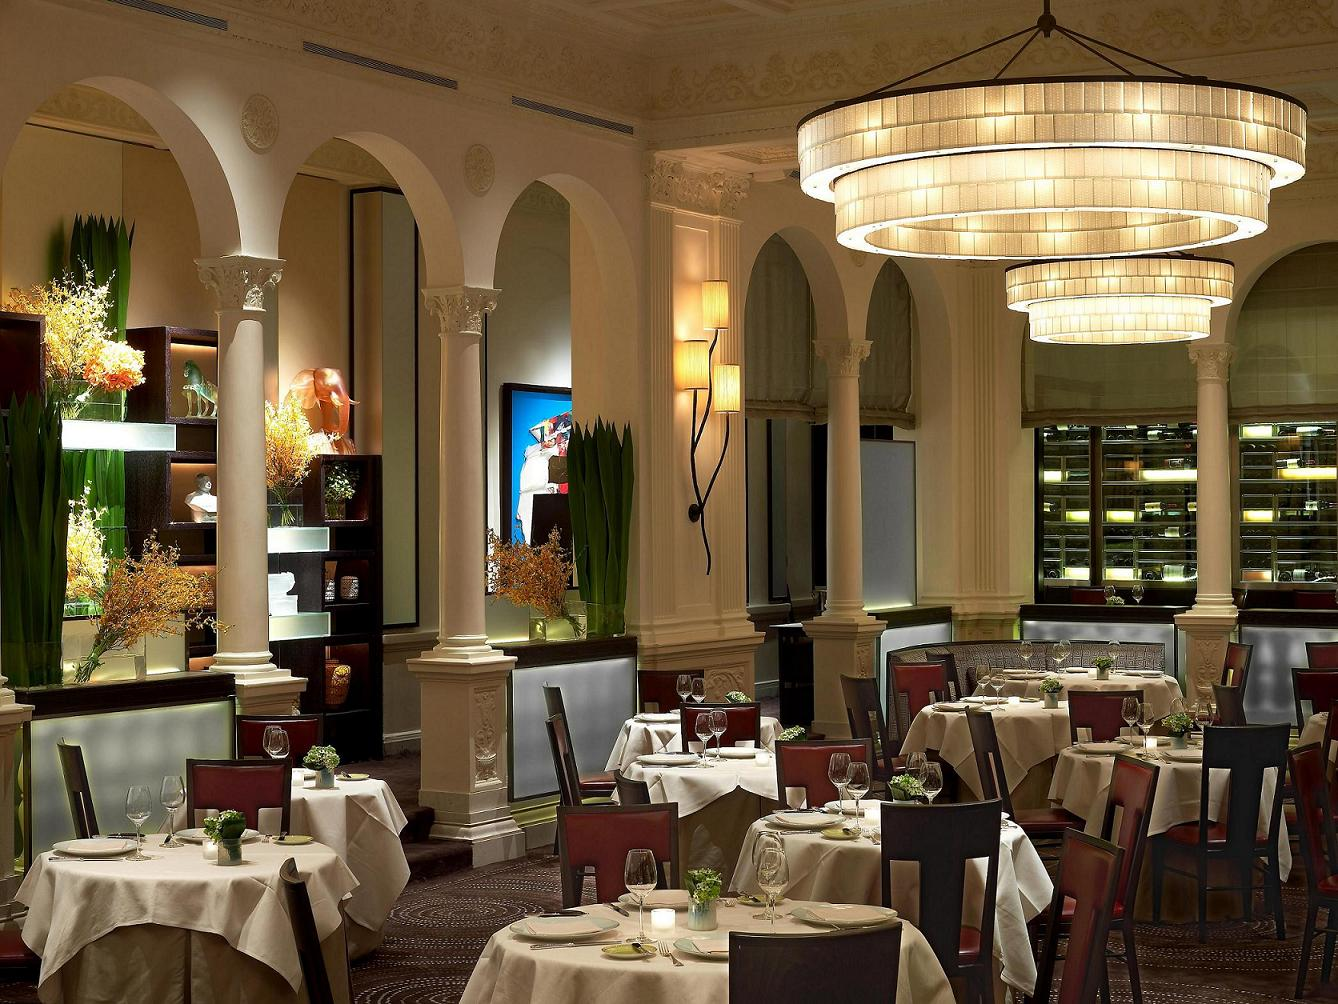 Top 10 restaurants in new york city legatto lifestyle for Surreal salon 8